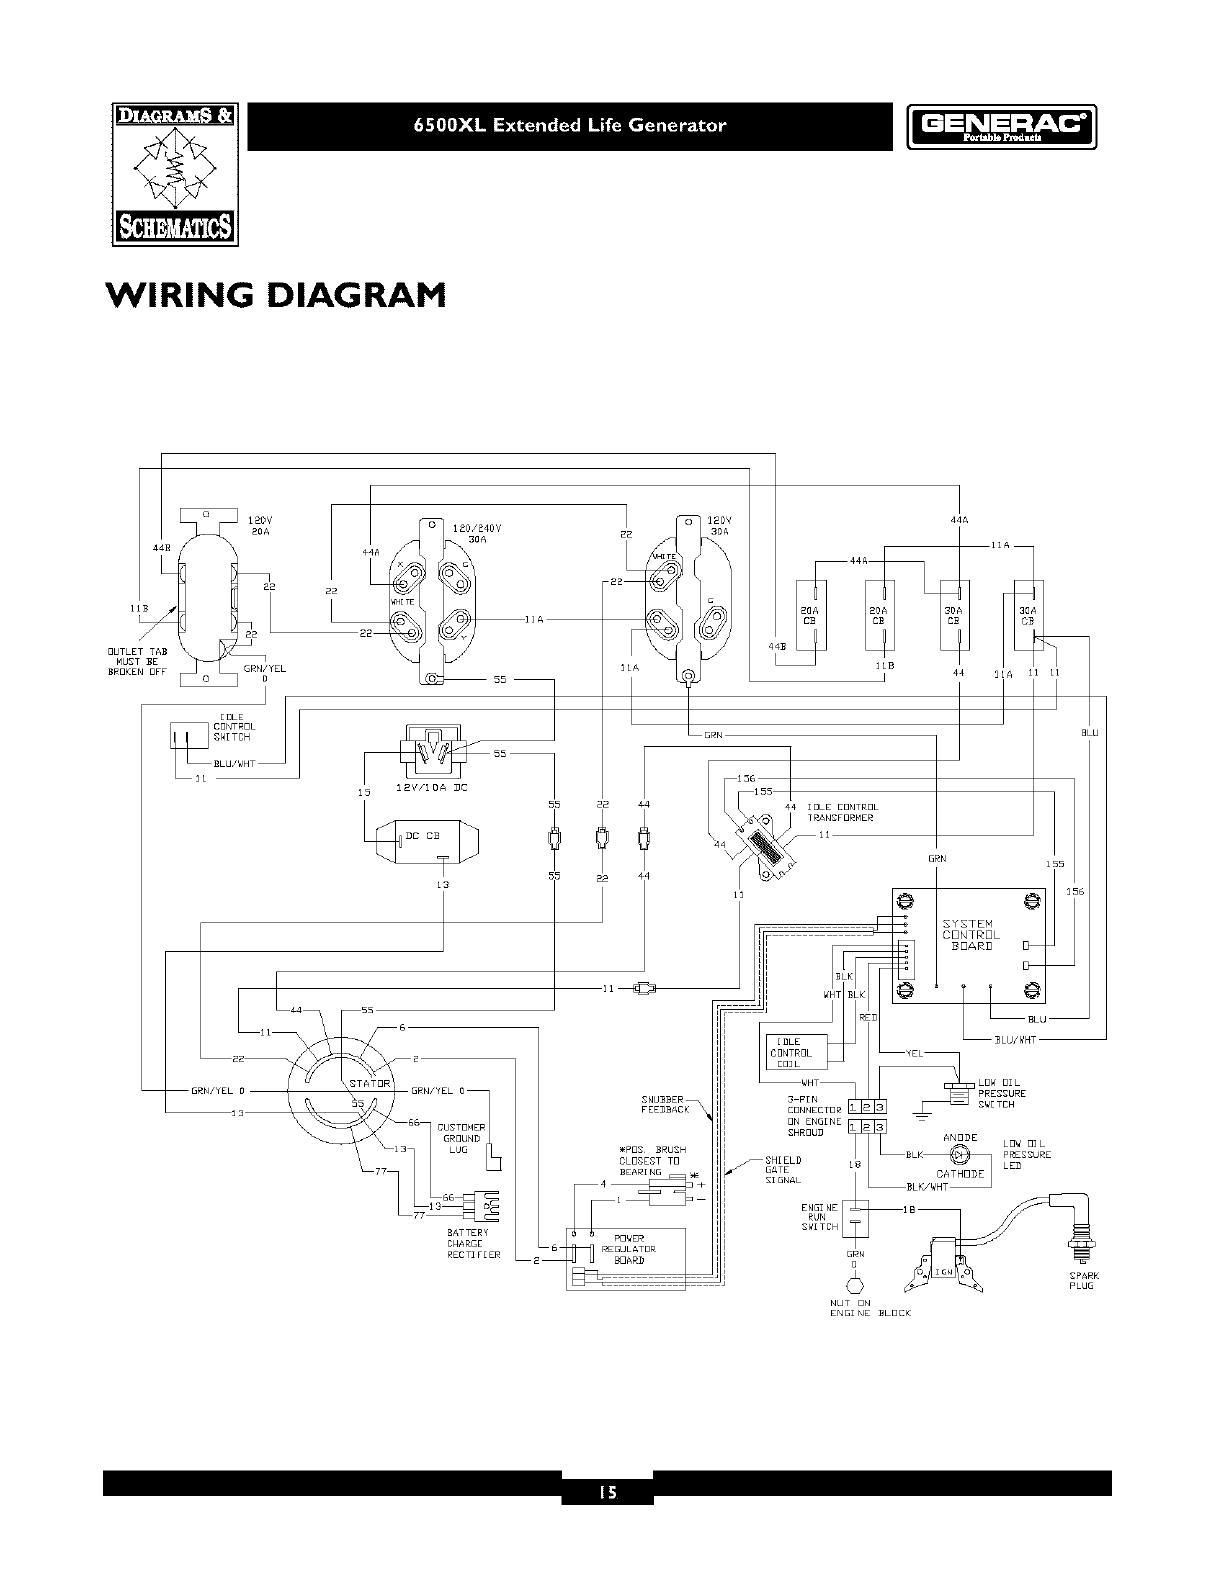 abacbfe4 09c9 46f3 b904 b7a0ca98baaa bgf page 15 of generac portable generator 6500xl user guide abac air compressor wiring diagram at virtualis.co